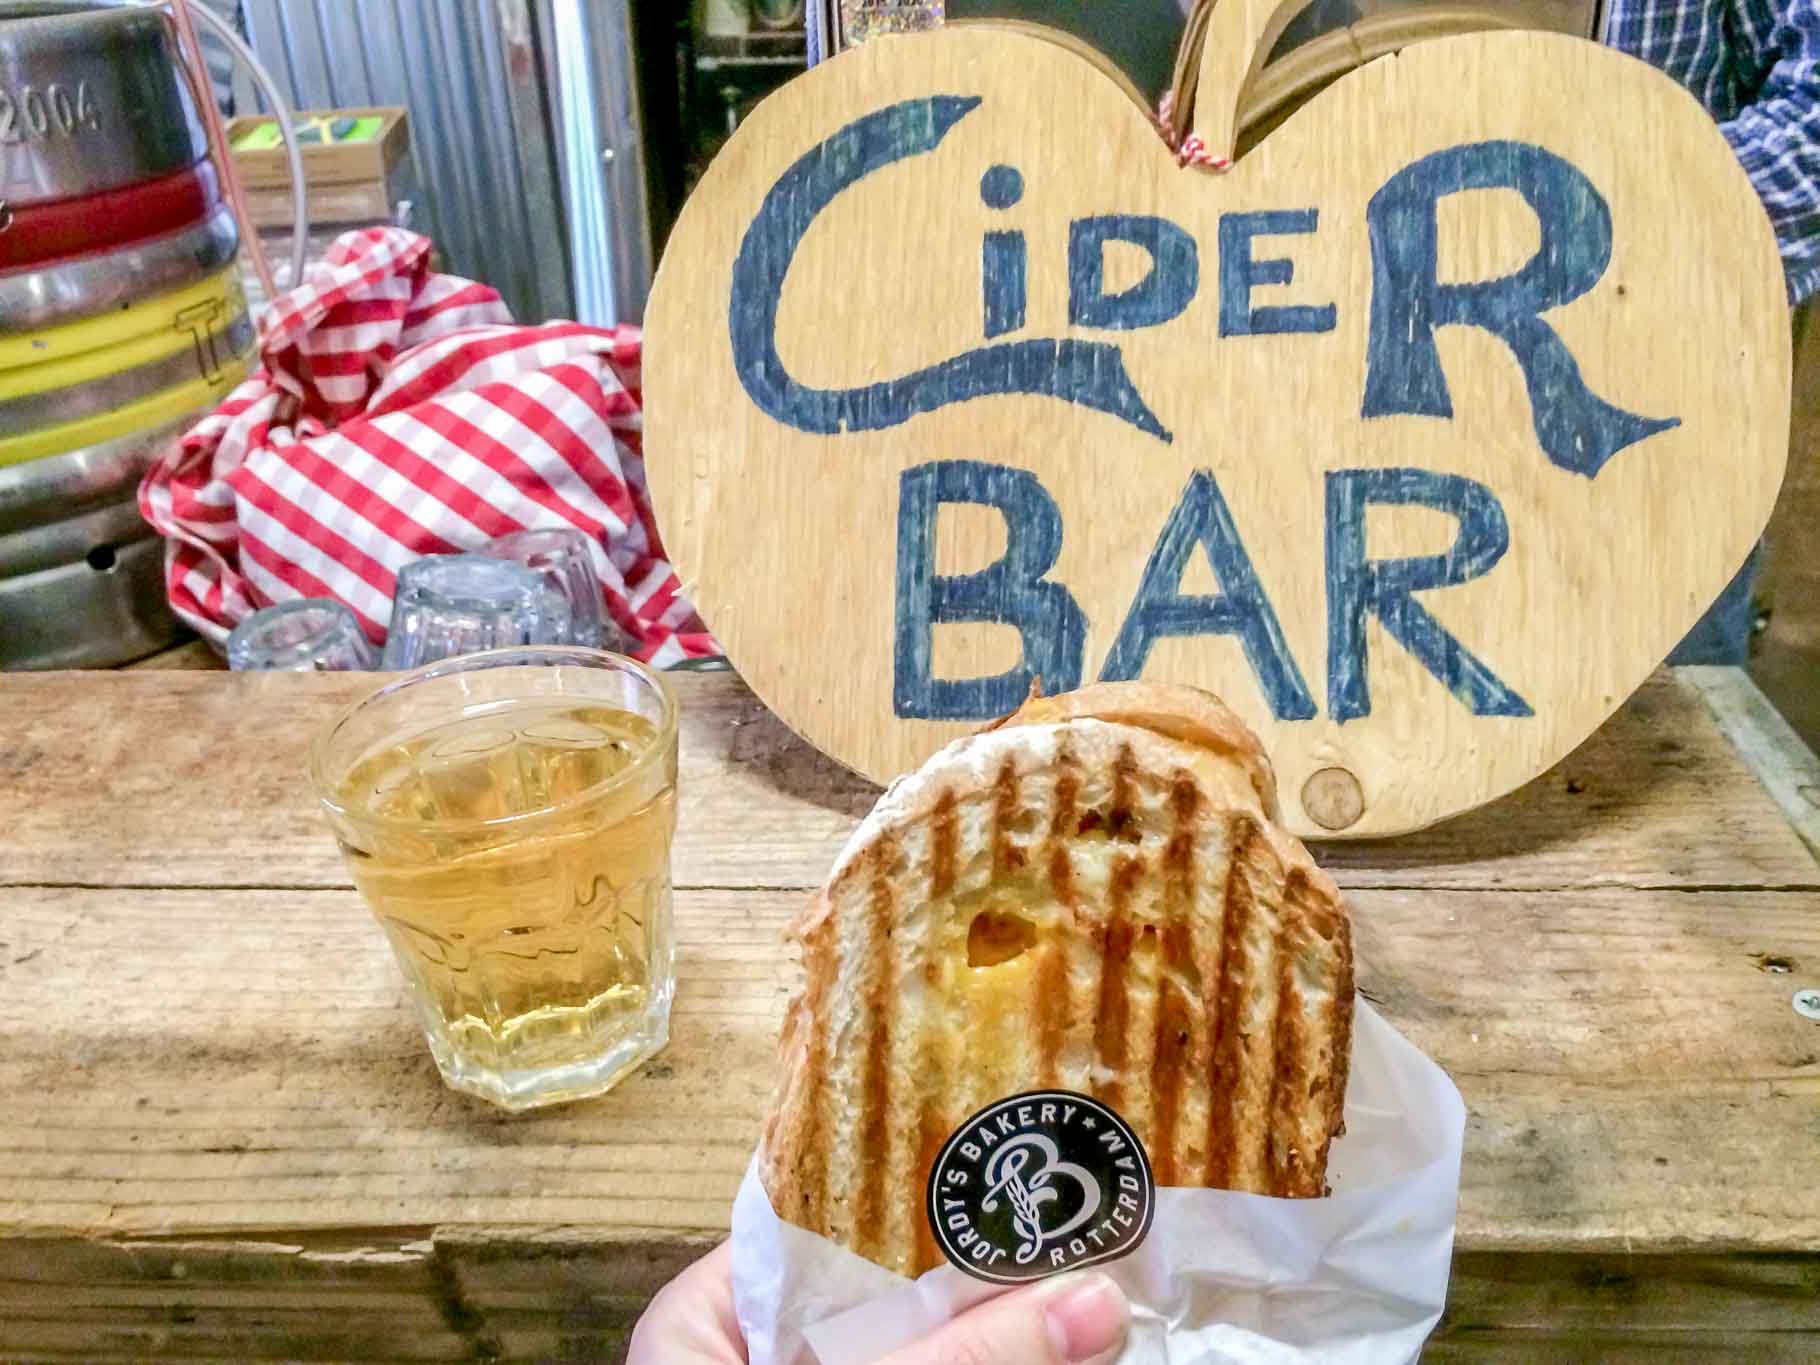 """""""Cider Bar"""" sign, sandwich, and drink on a table at the Fenix Food Factory, a Rotterdam must see"""